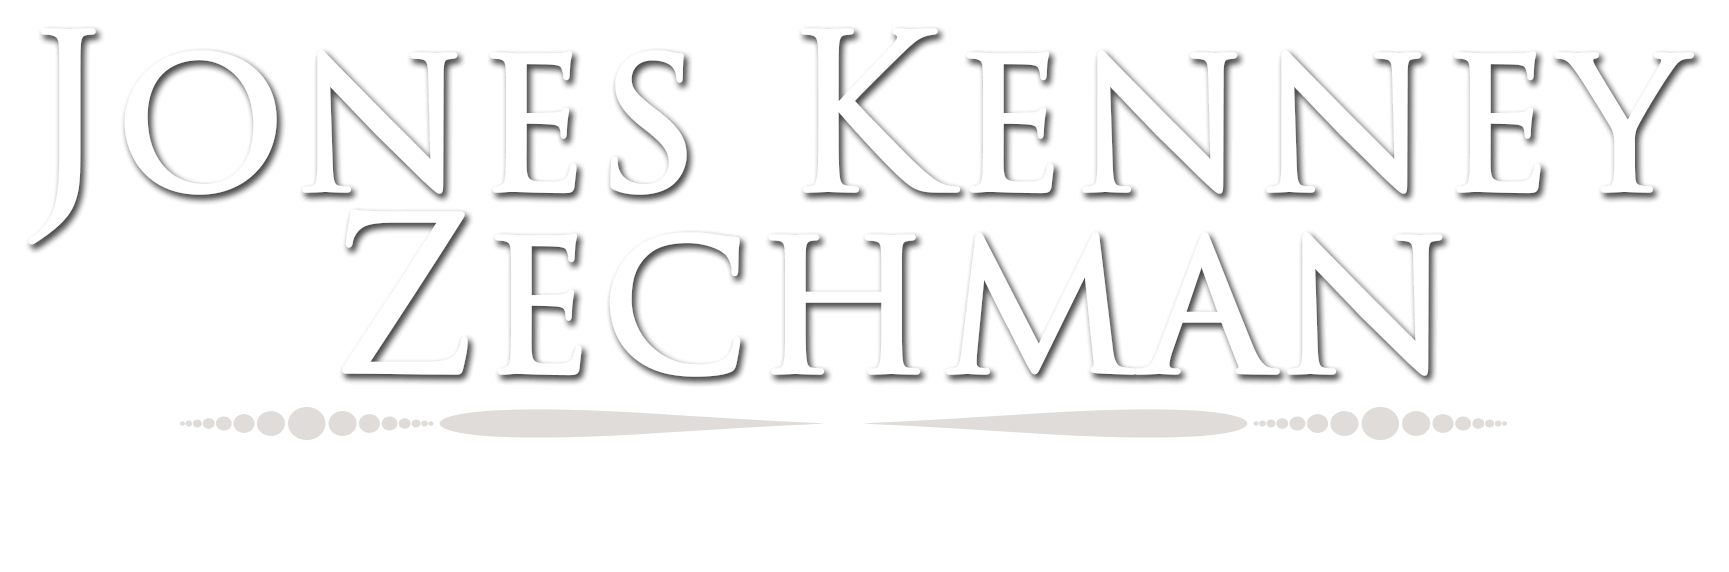 Jones Kenney Zechman Funeral Home | Springfield OH funeral home and